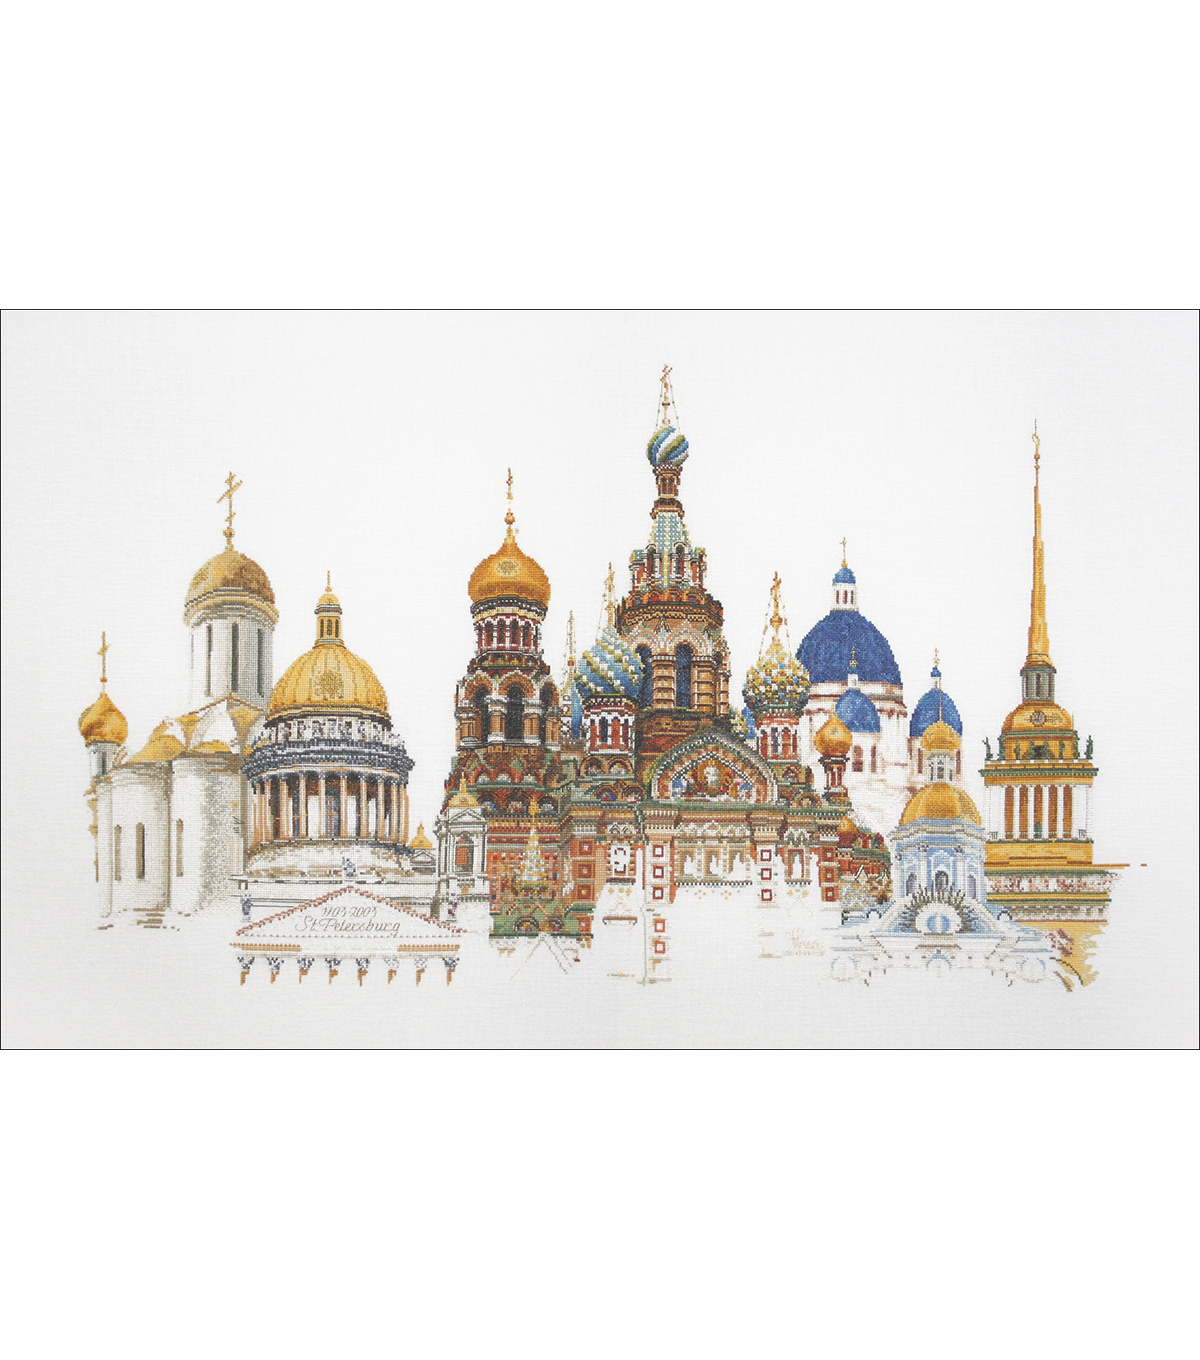 Thea Gouverneur St. Petersburg On Aida Counted Cross Stitch Kit